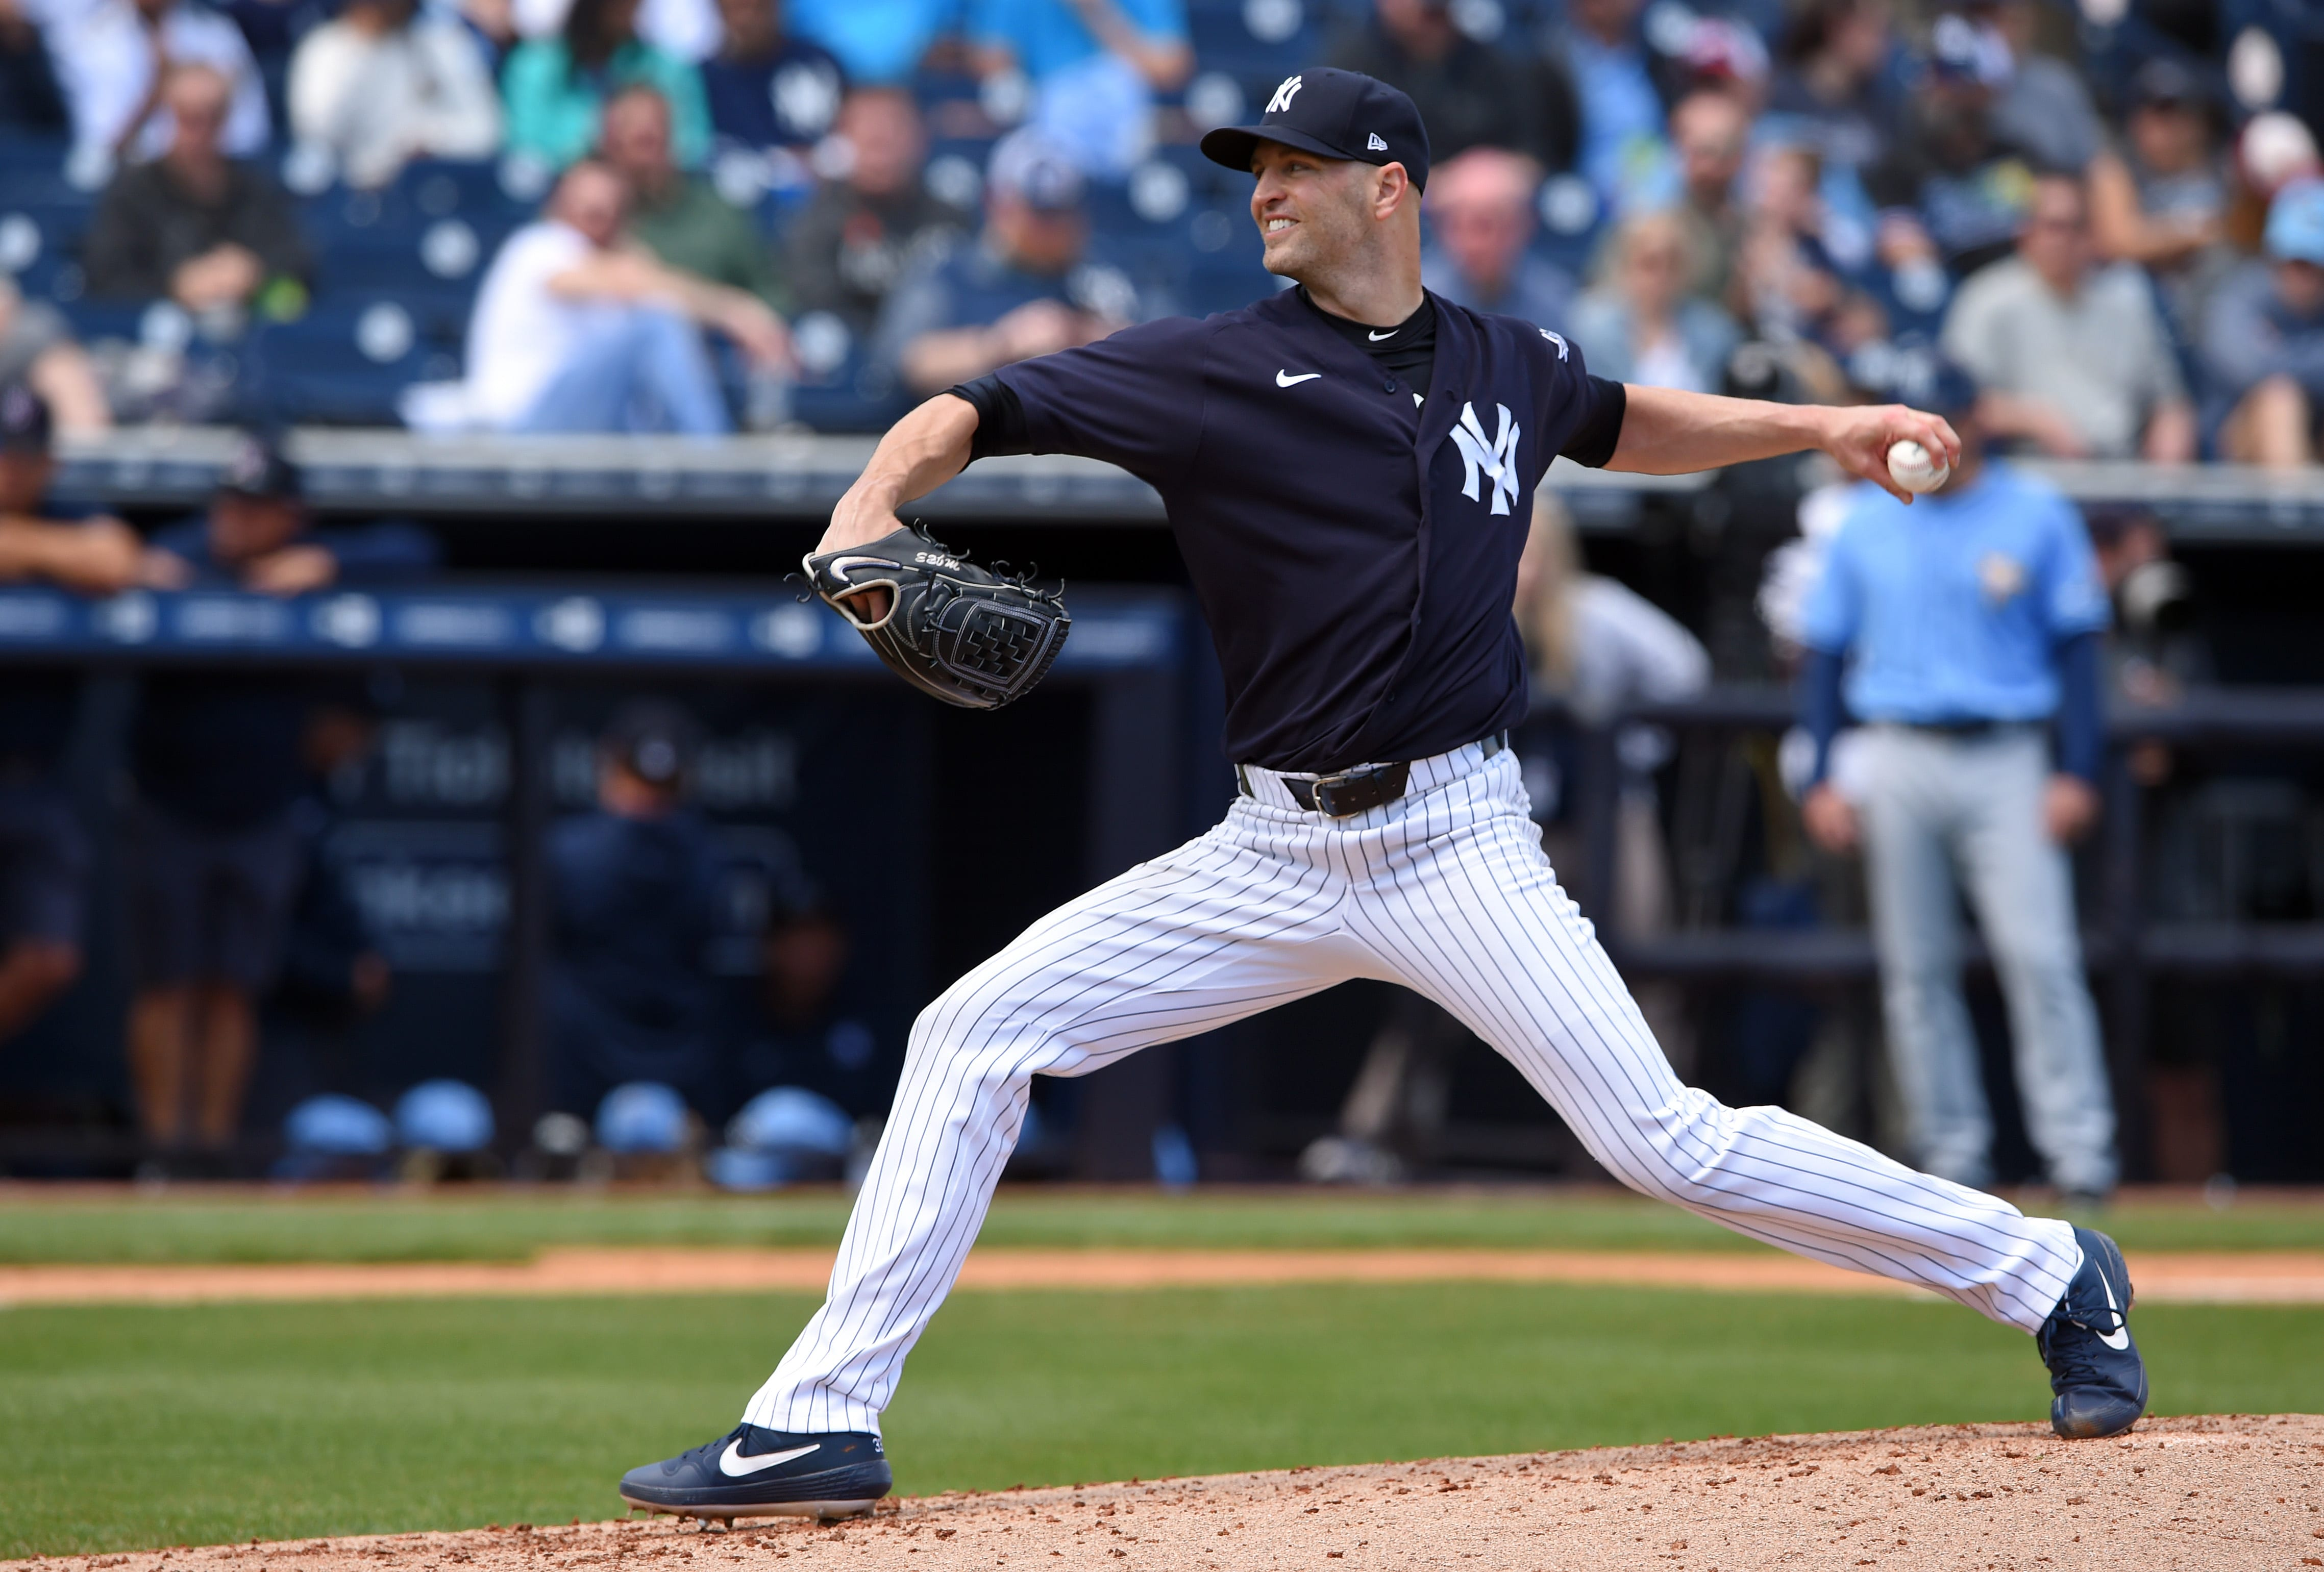 New York Yankees, J.A. Happ